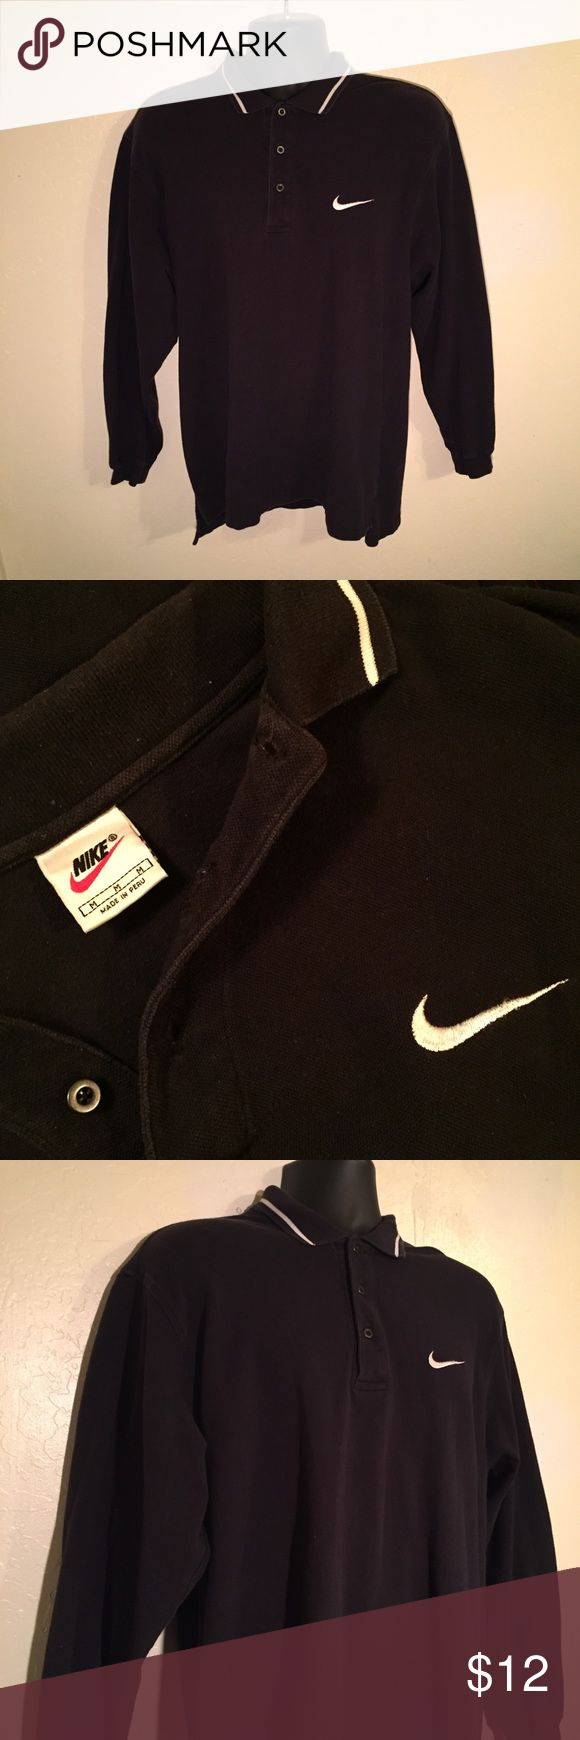 ✔️ NIKE Vintage 90s Style Sport Polo Shirt M 💥 Barely Worn athletic style Nike Polo with iconic Nike embroidery! No stains, no rips, no tears! 90s vintage piece. Nike Shirts Polos